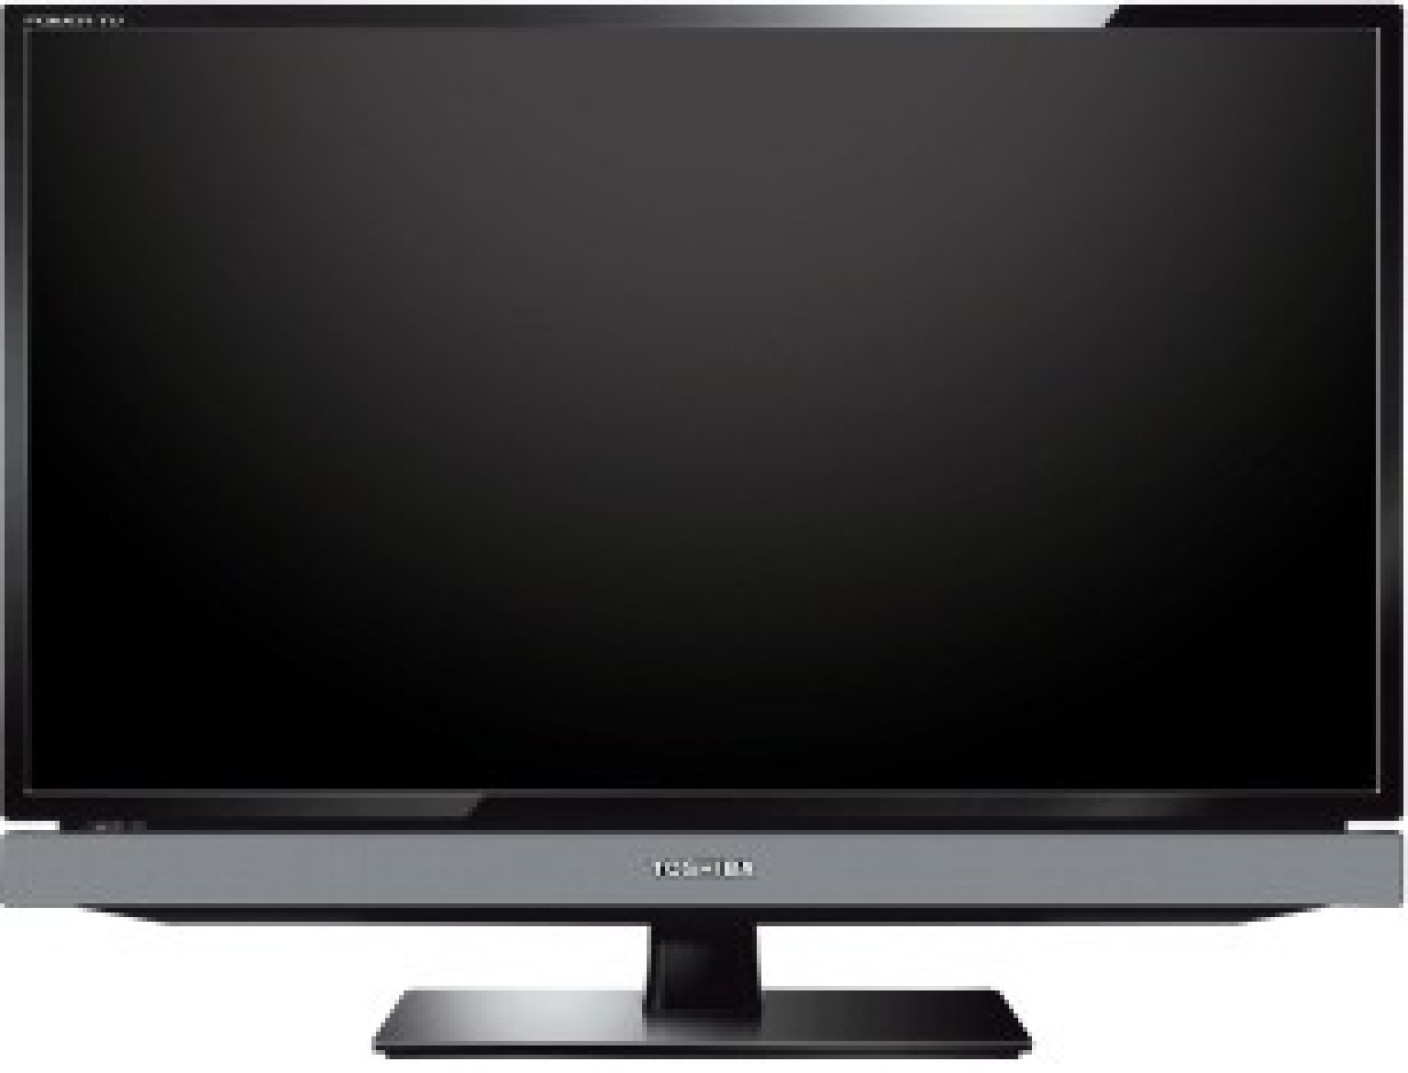 Sony bravia 22 inch led tv price in bangalore dating 10